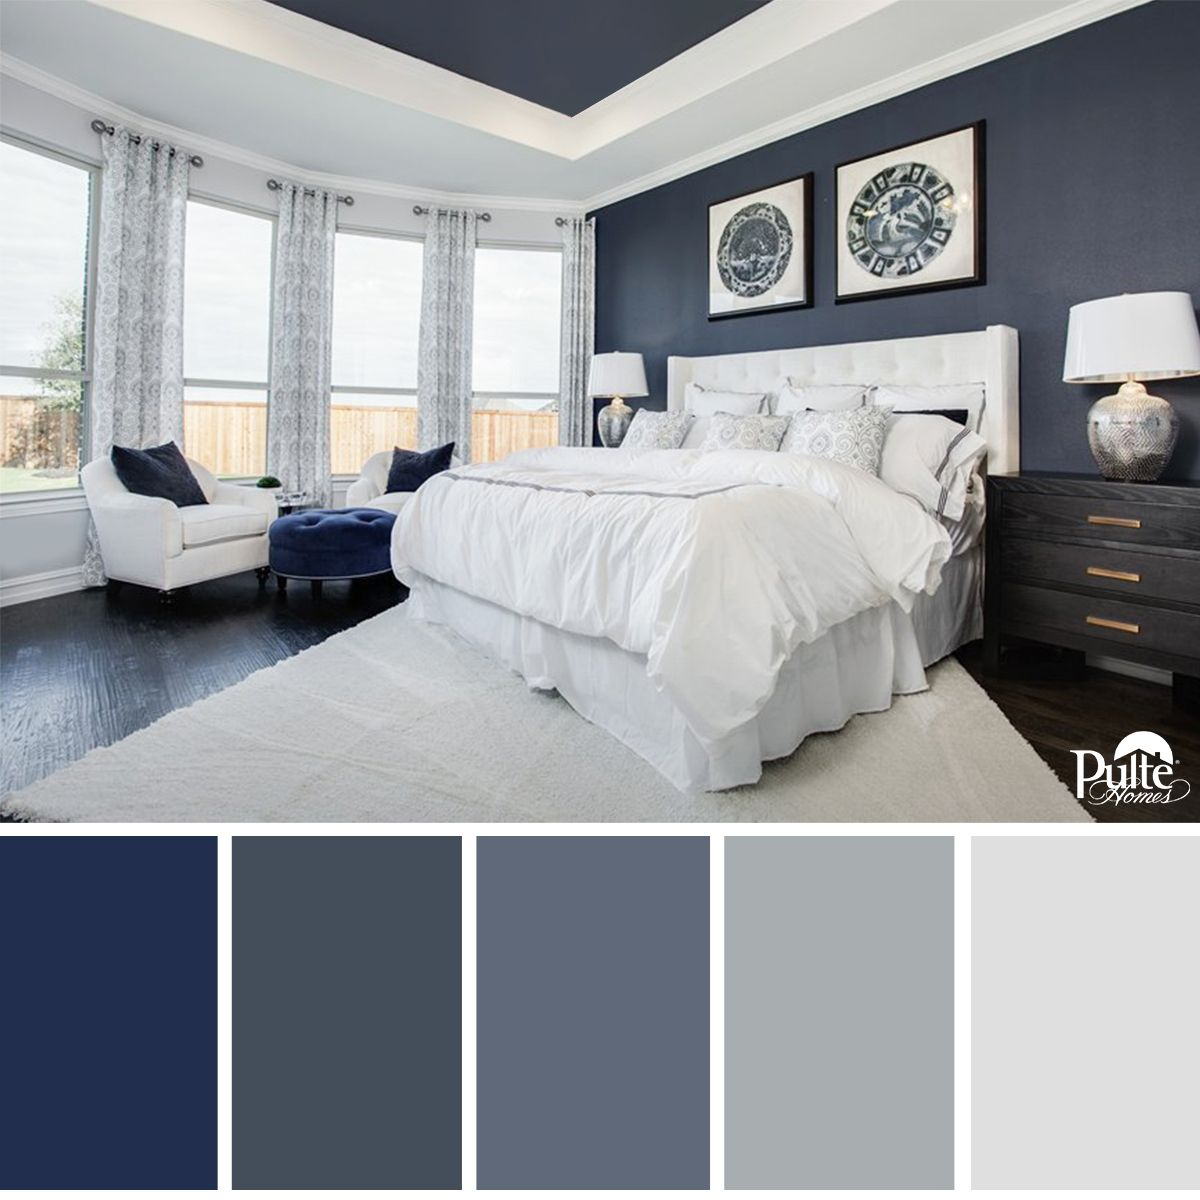 Bedroom Colours Pink Master Bedroom Paint Ideas 2015 Anime Bedroom Eyes Bedroom Ideas Cream Carpet: This Bedroom Design Has The Right Idea. The Rich Blue